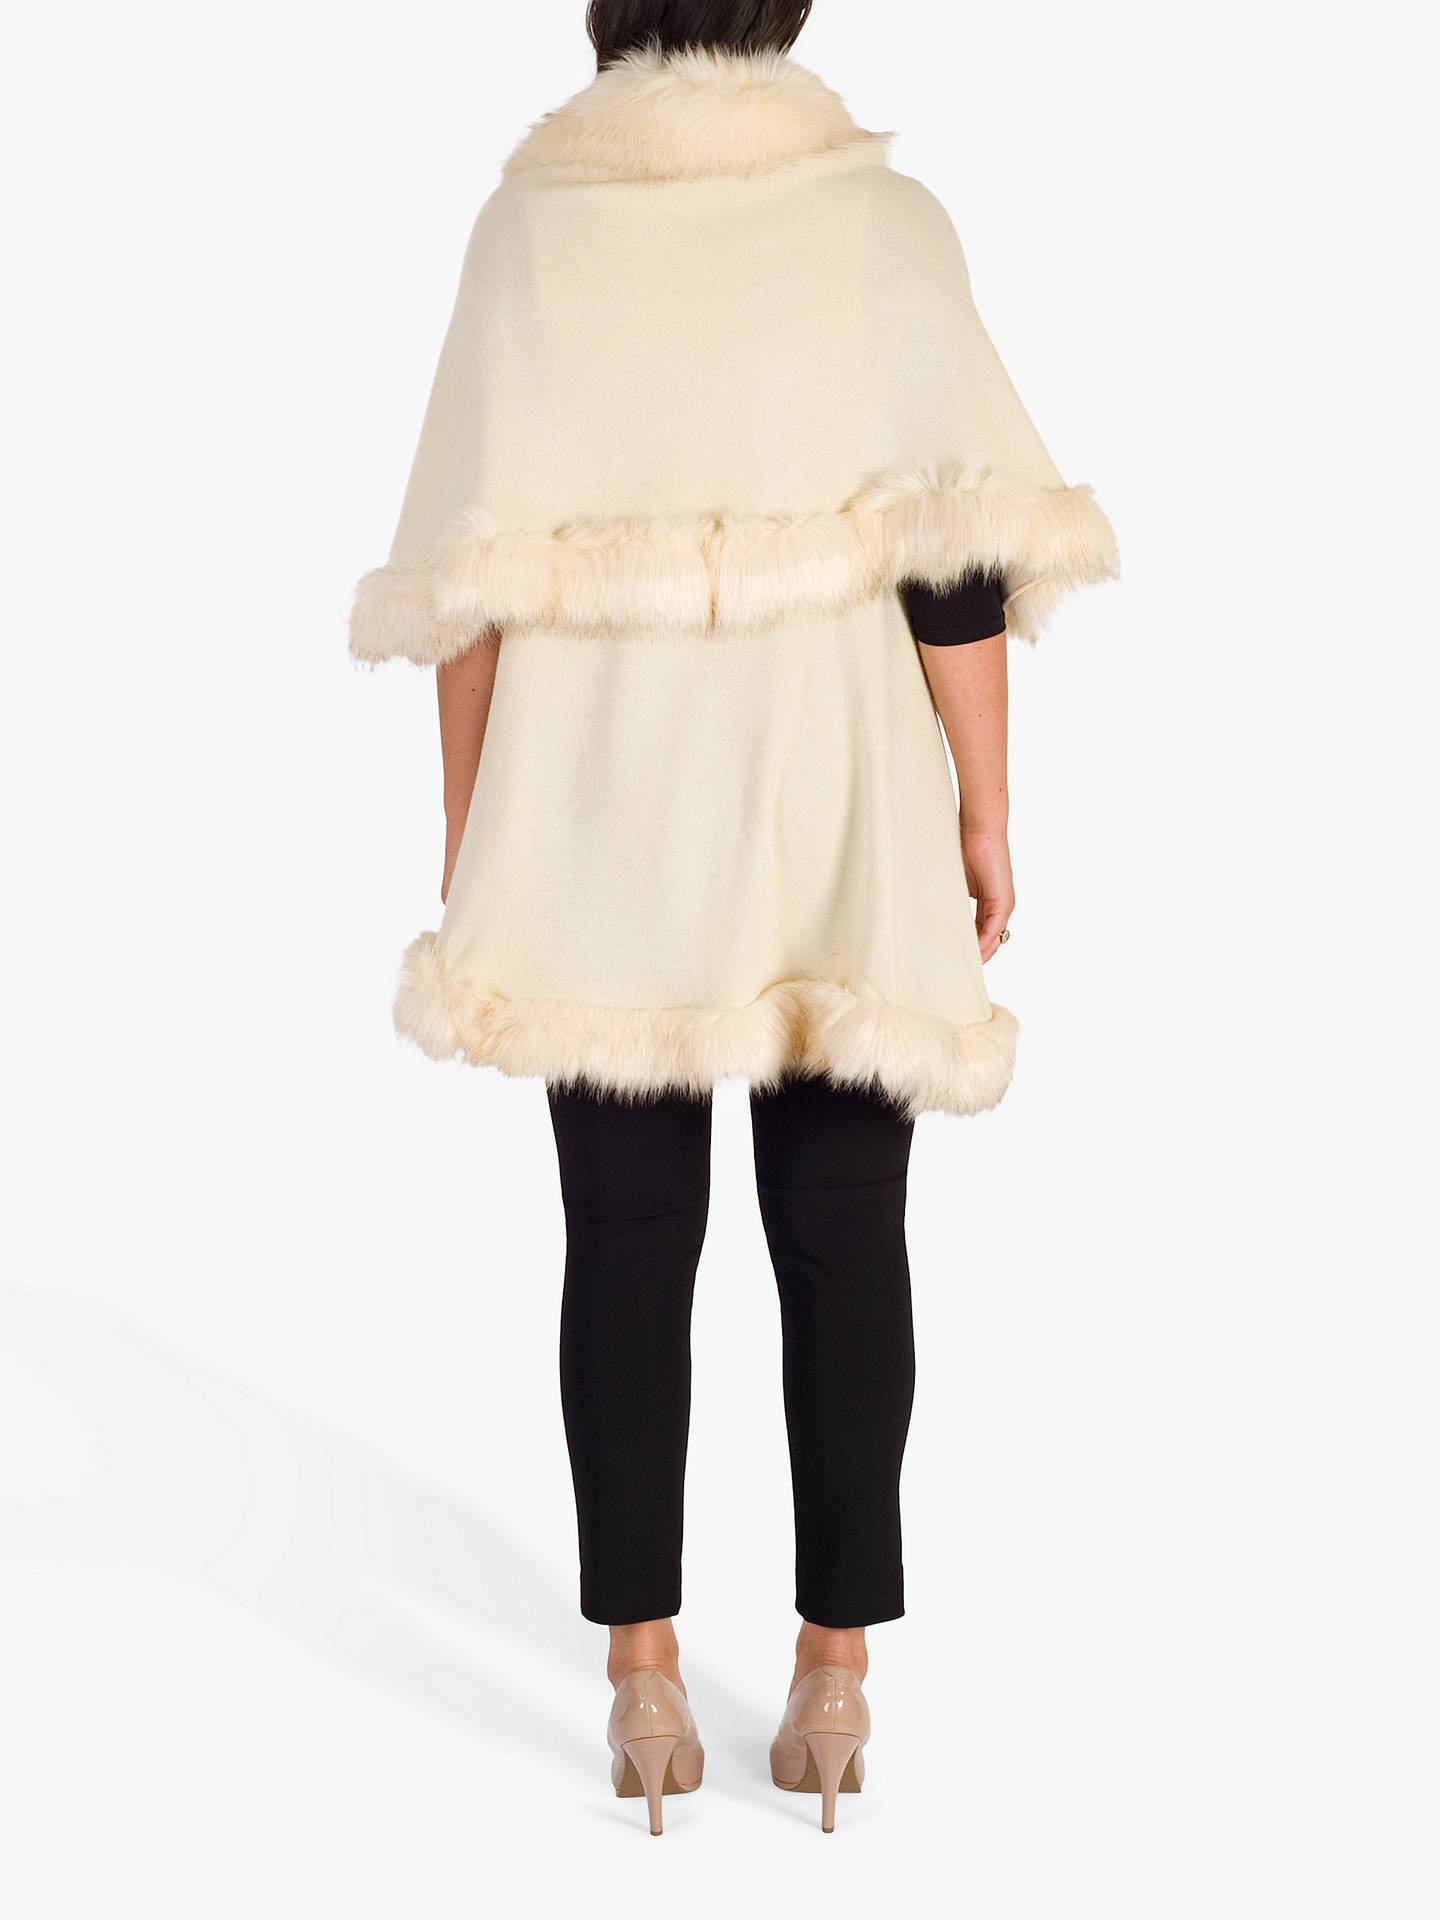 BuyChesca Luxury Knitted Faux Fur Cape, Cream, One Size Online at johnlewis.com